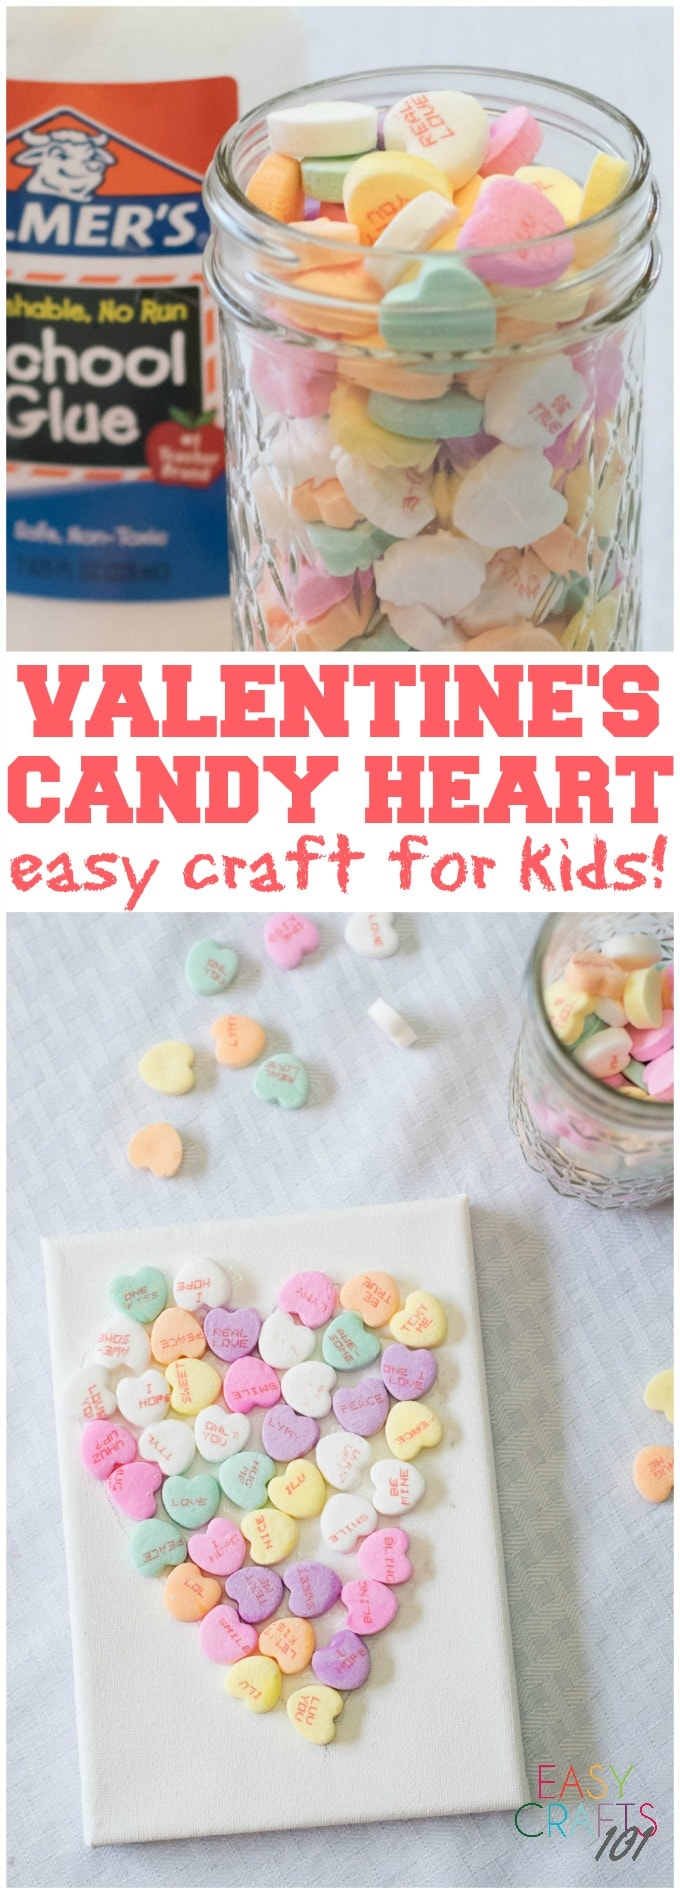 Valentines-Candy-Heart-Easy-Craft-for-Kids